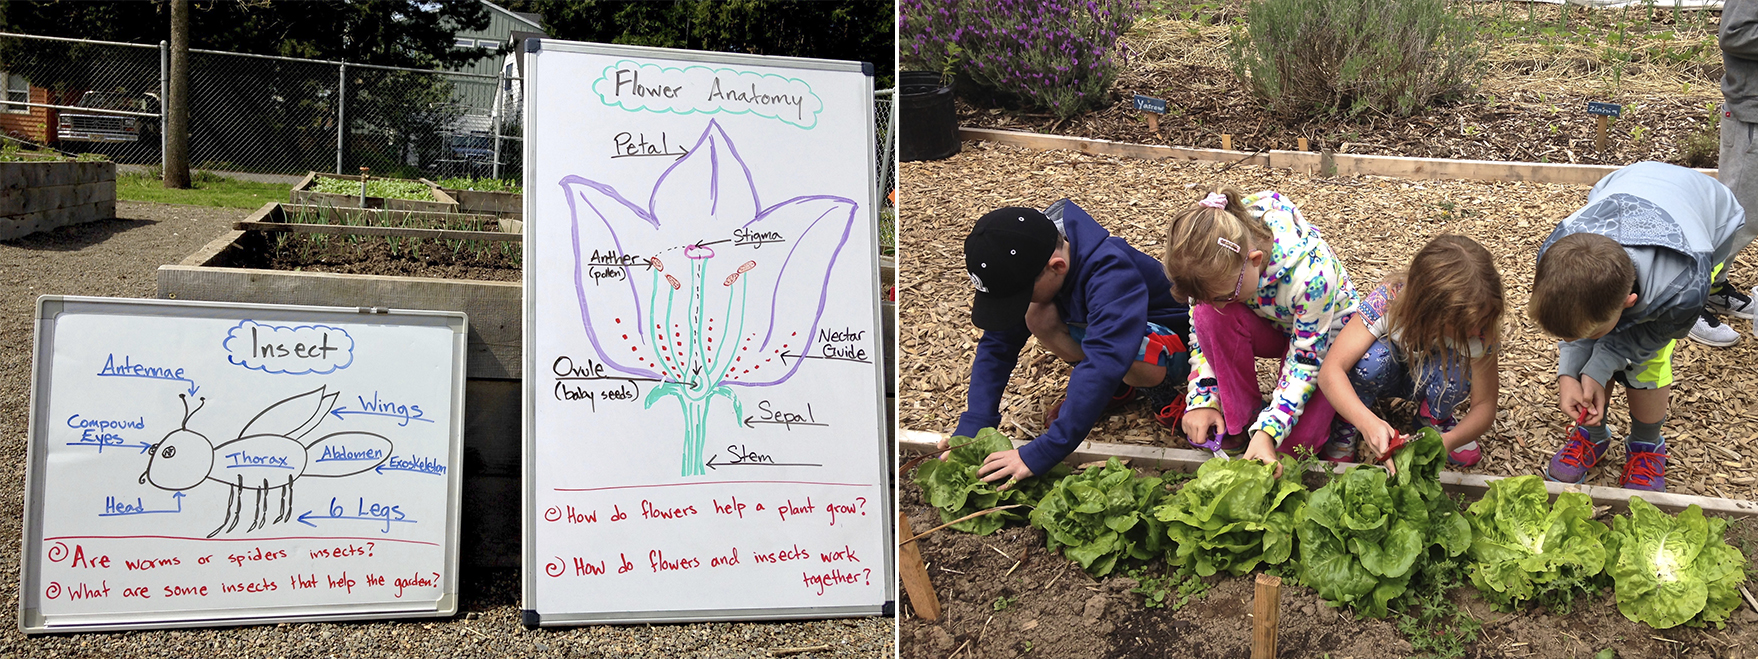 At left, hand-drawn diagrams detail insect and flower anatomy. At right, children tend plantings in a raised bed.